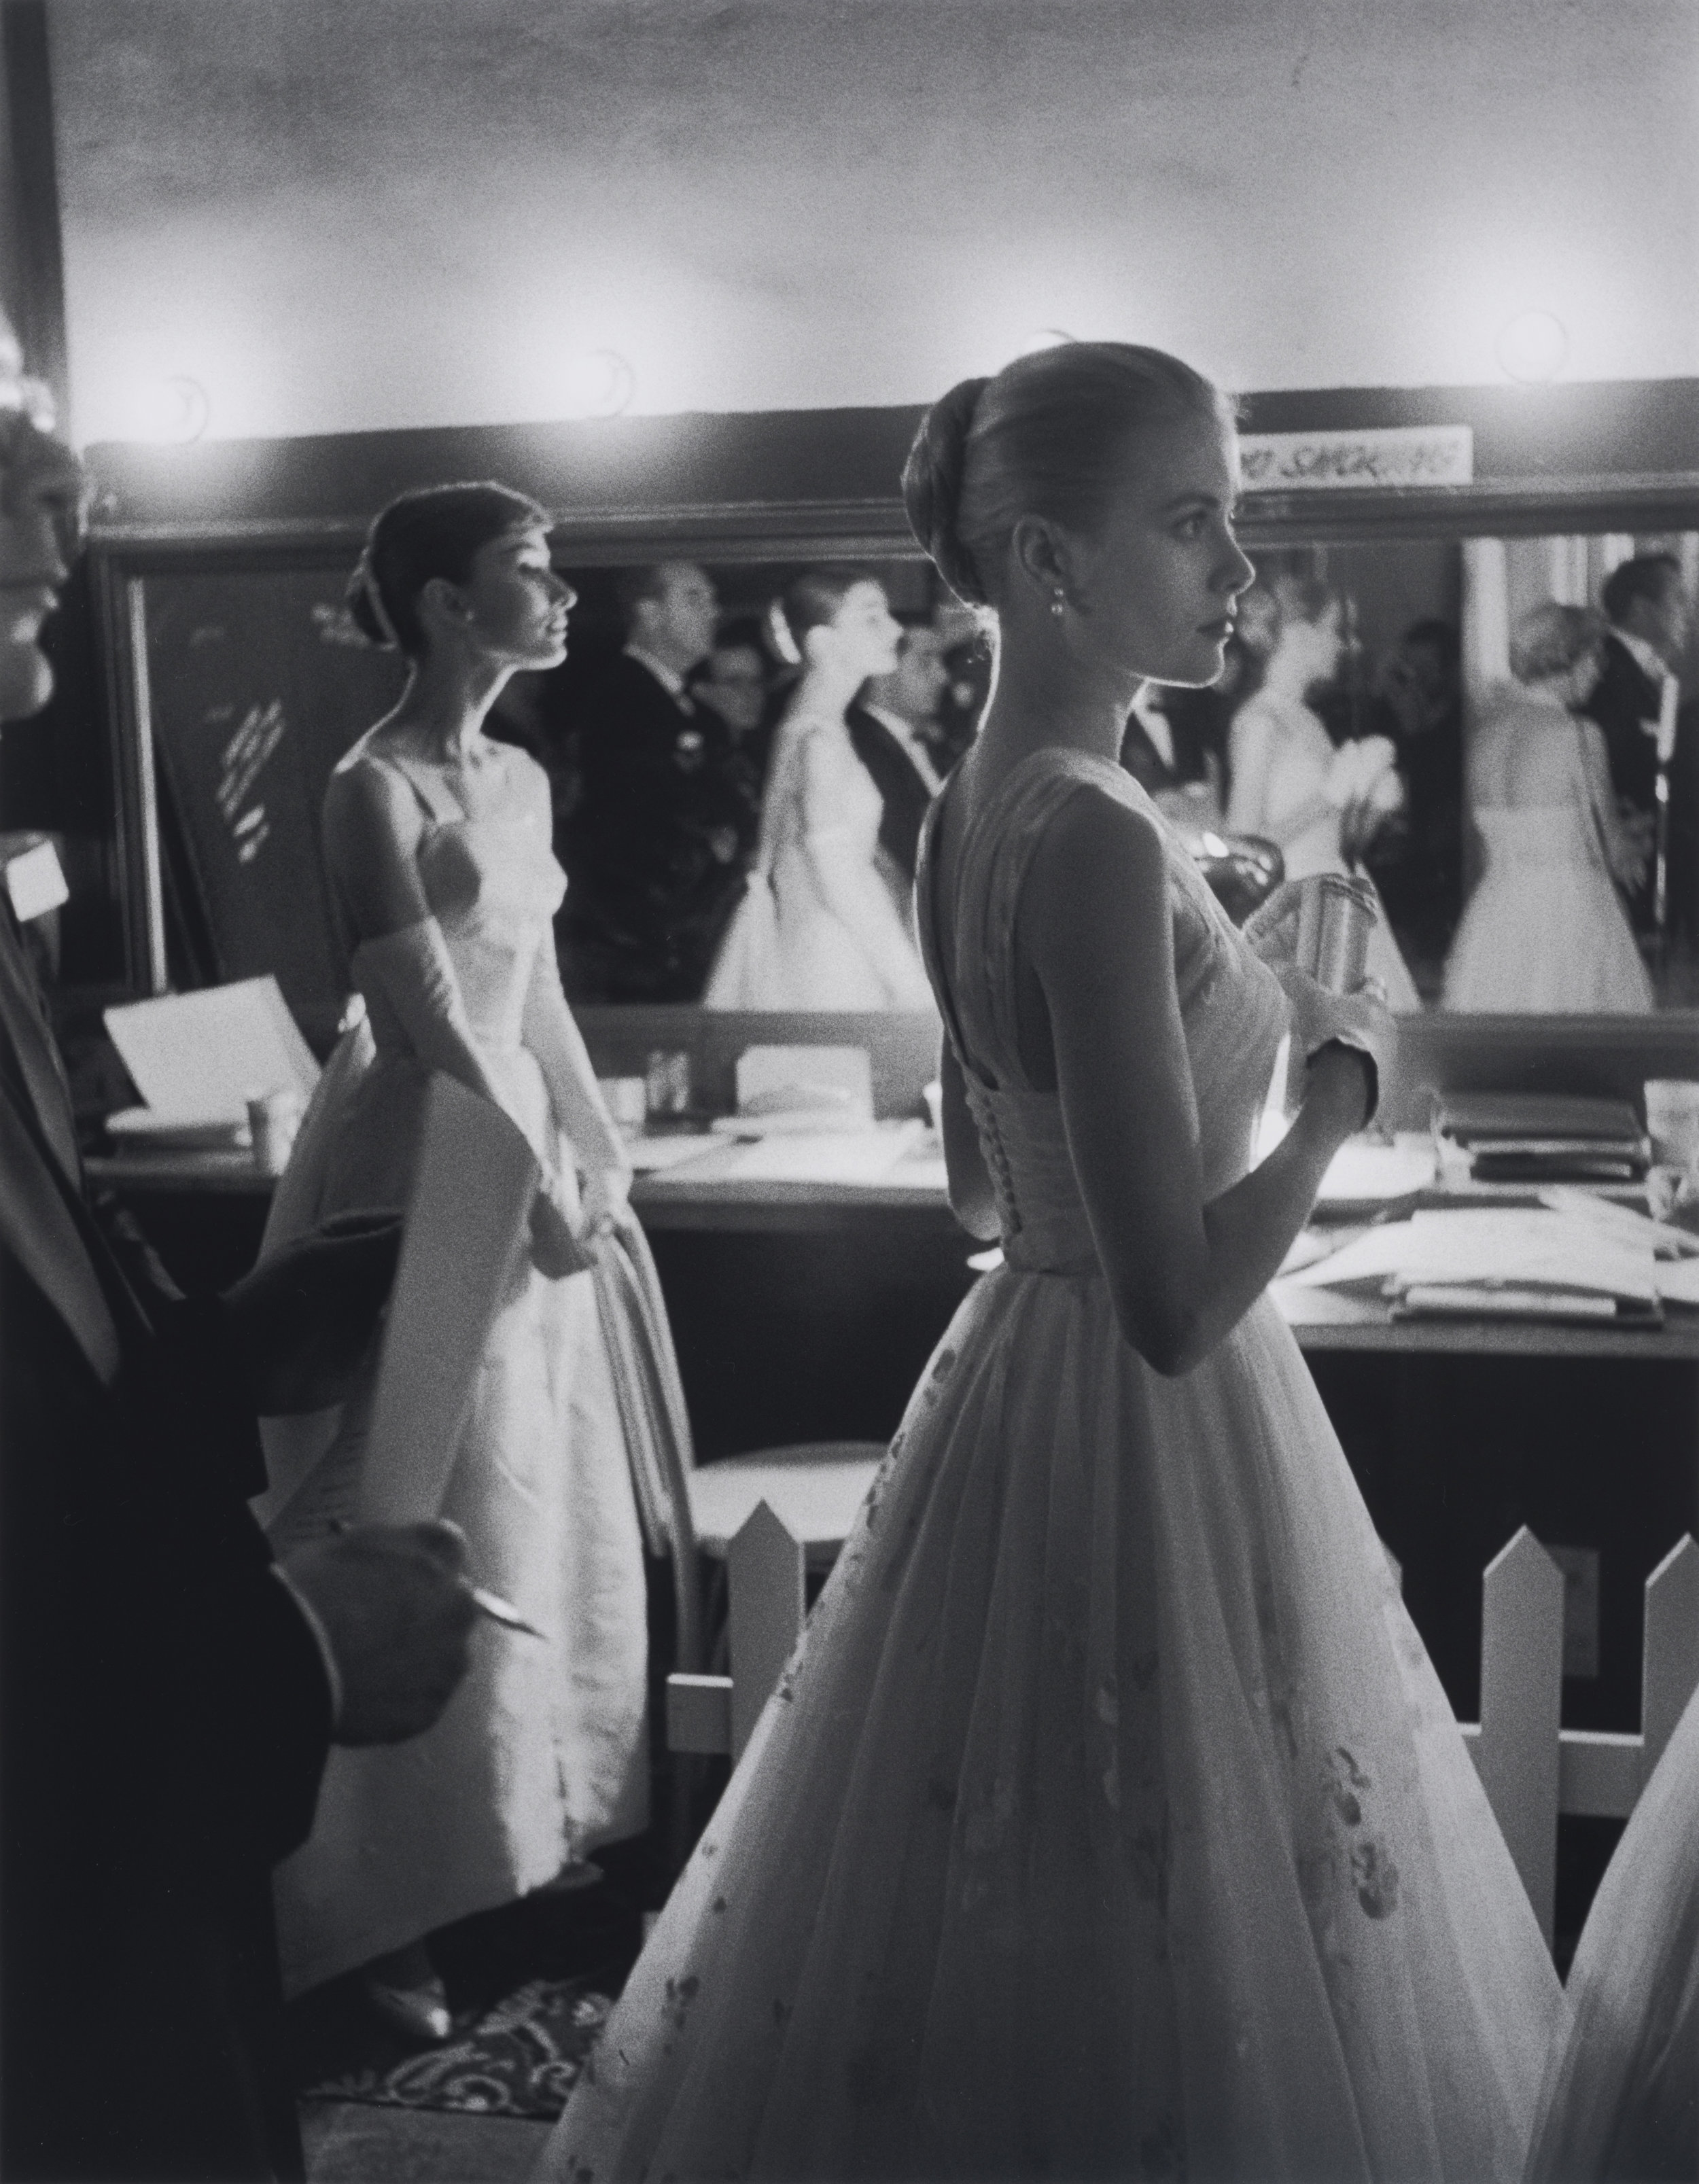 Audrey Hepburn & Grace Kelly Waiting Backstage, 1956